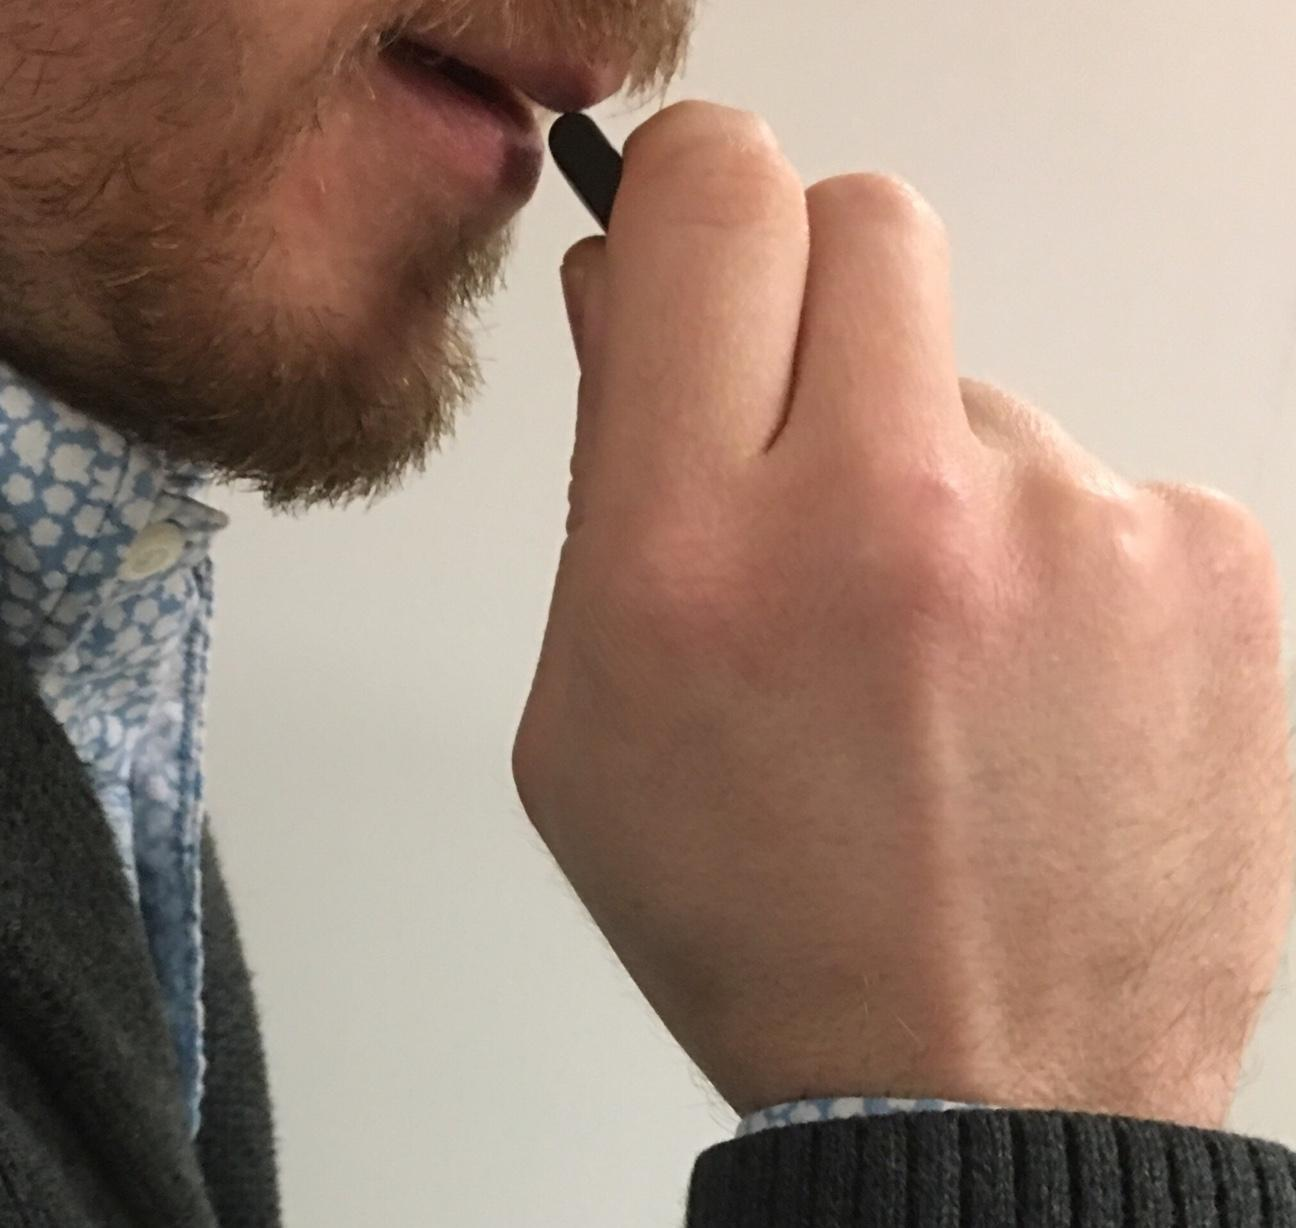 The Vexing Vape: Officials Say Small Vaping Device Juul A